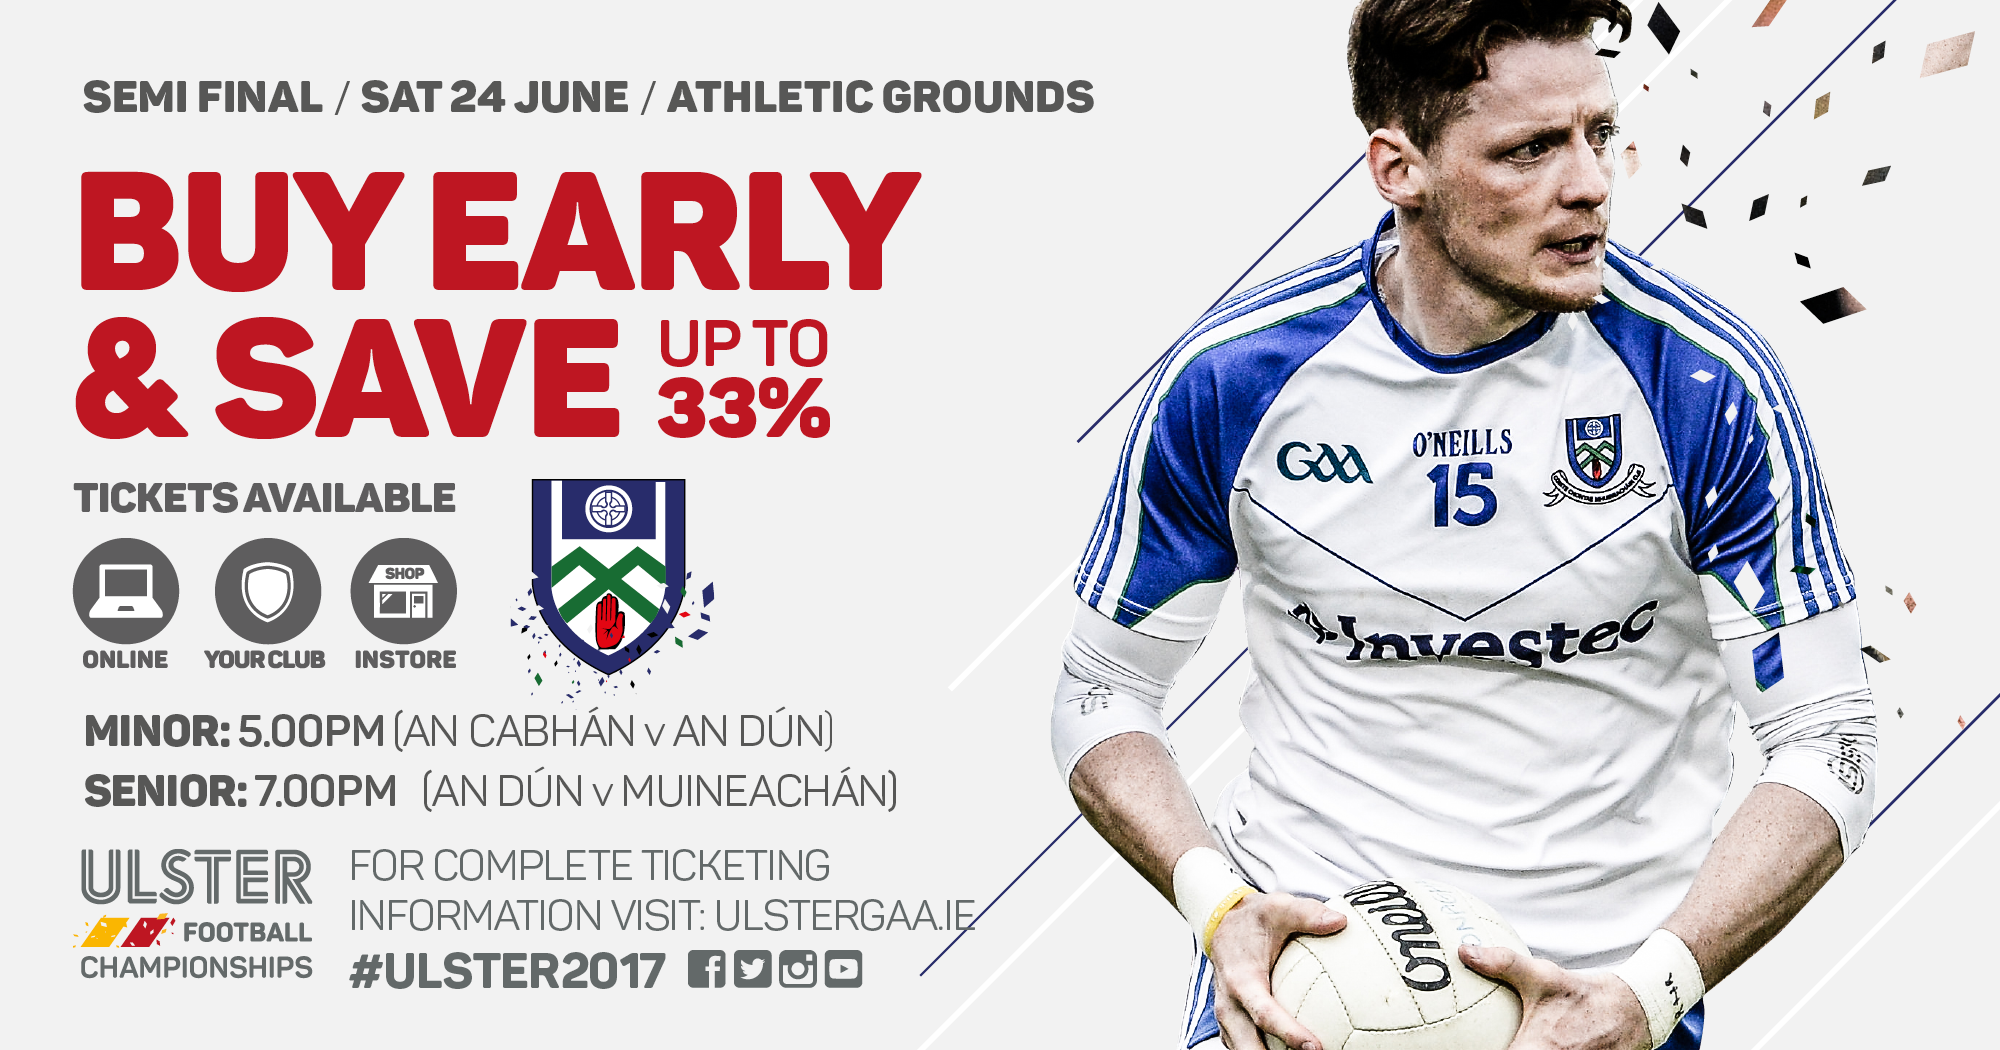 Ulster SFC Match Ticket Sales